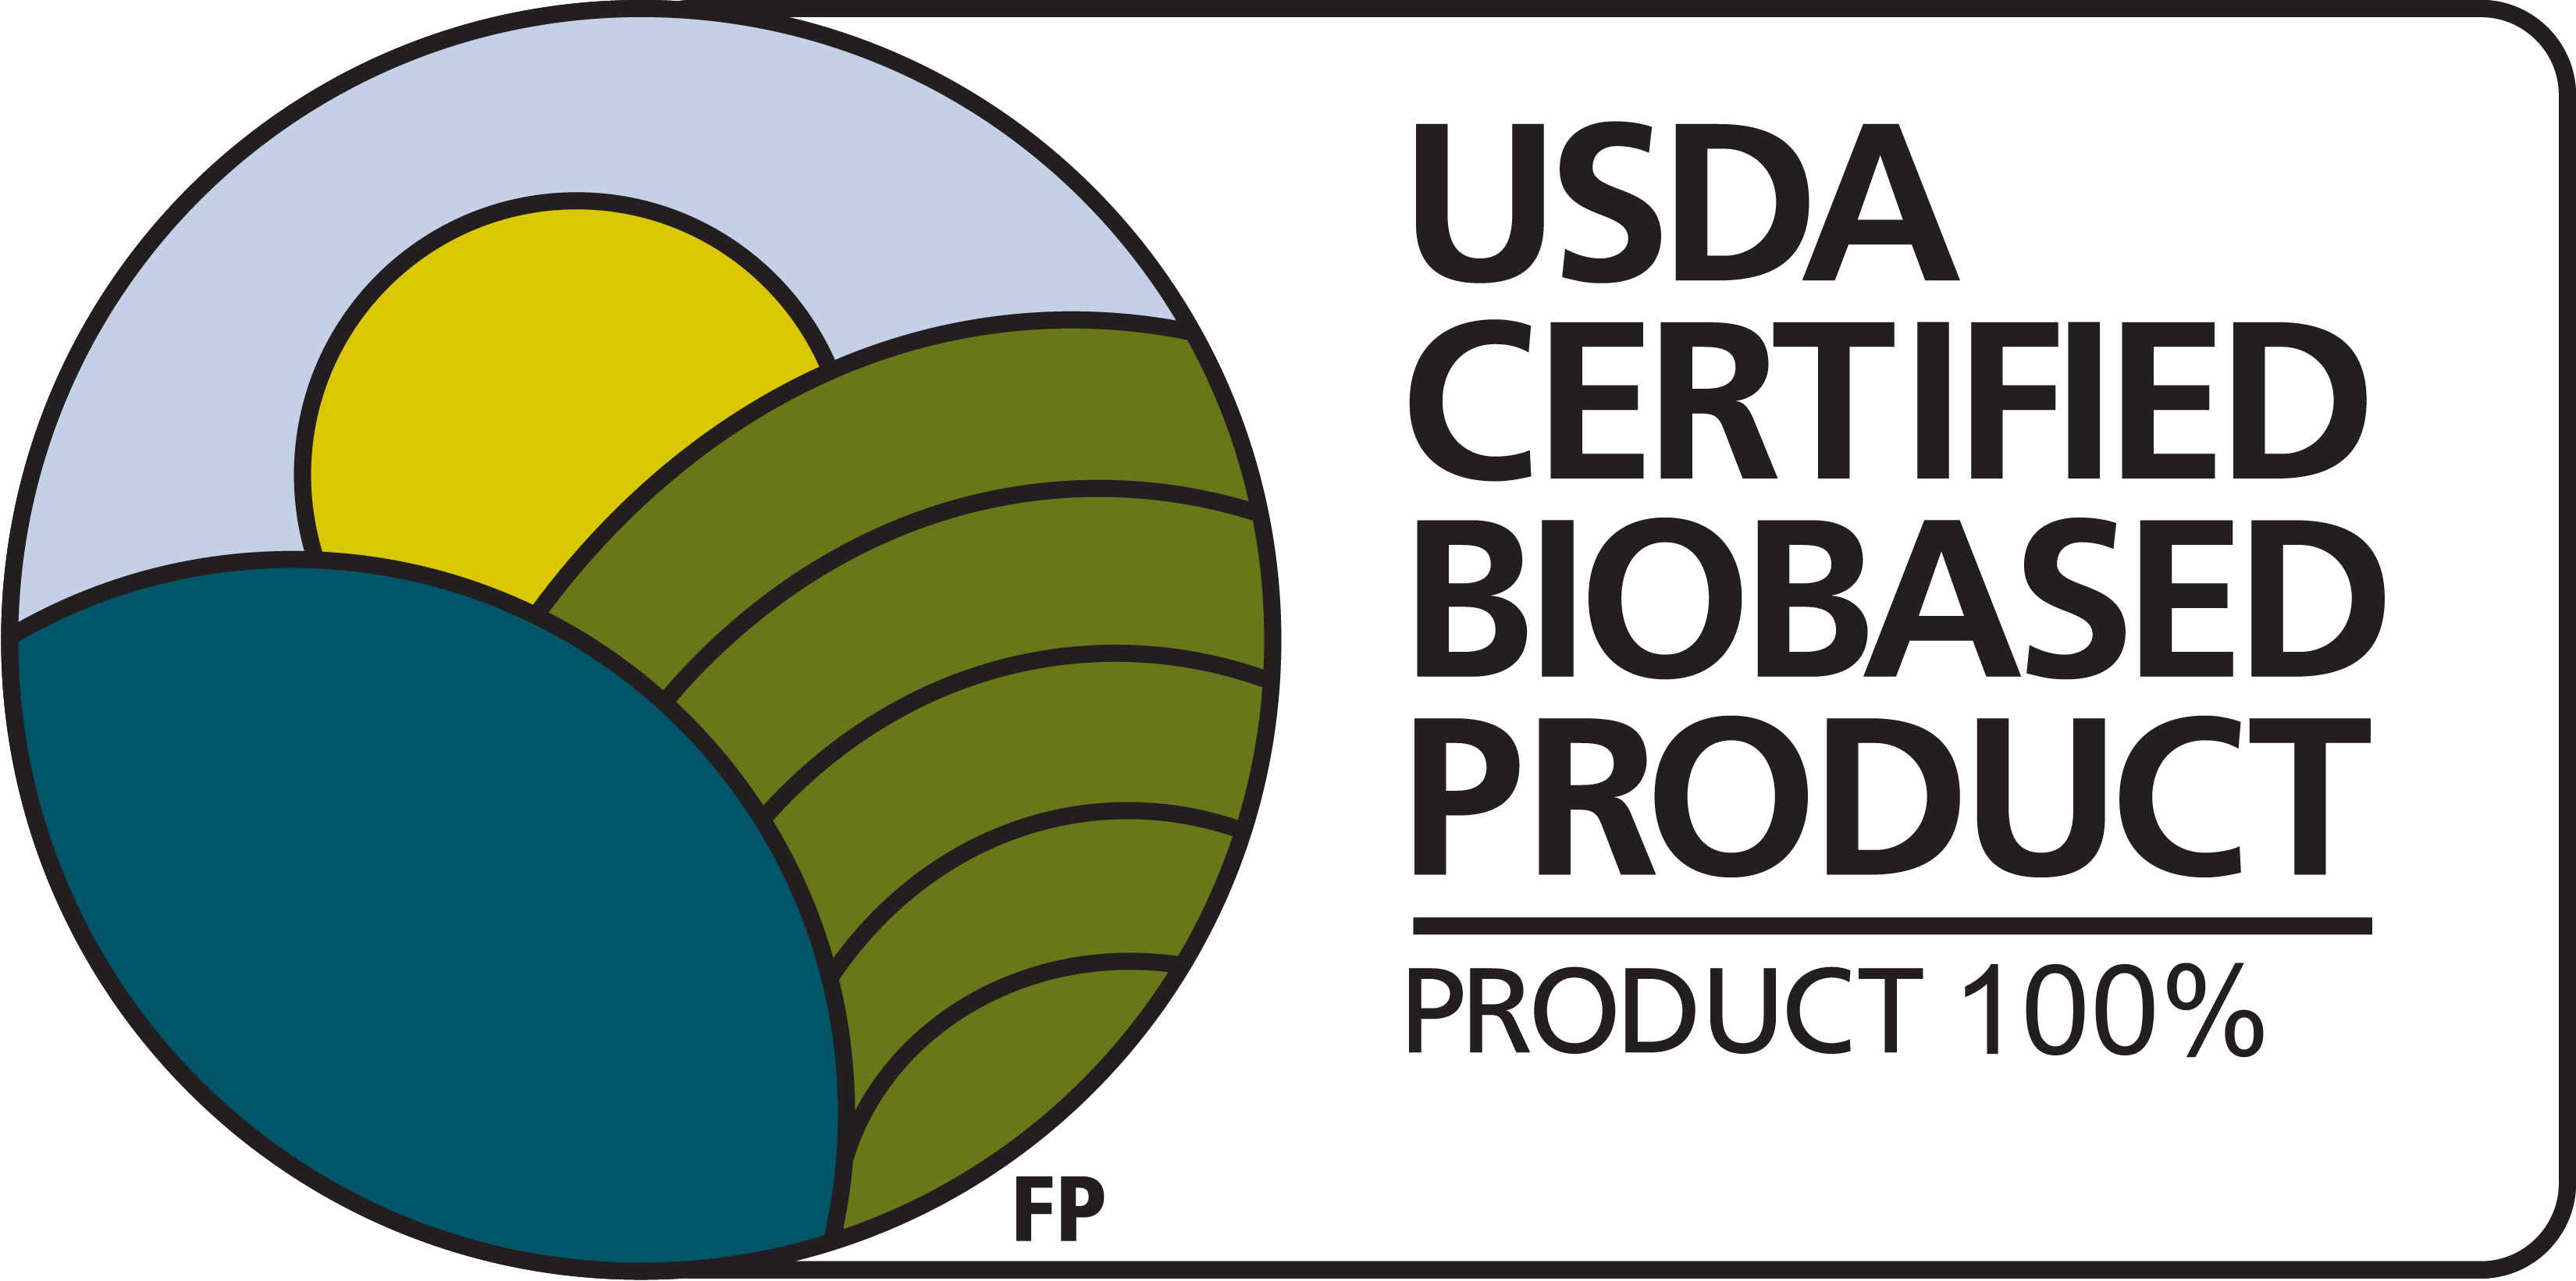 USDA 100 percent bio based product logo